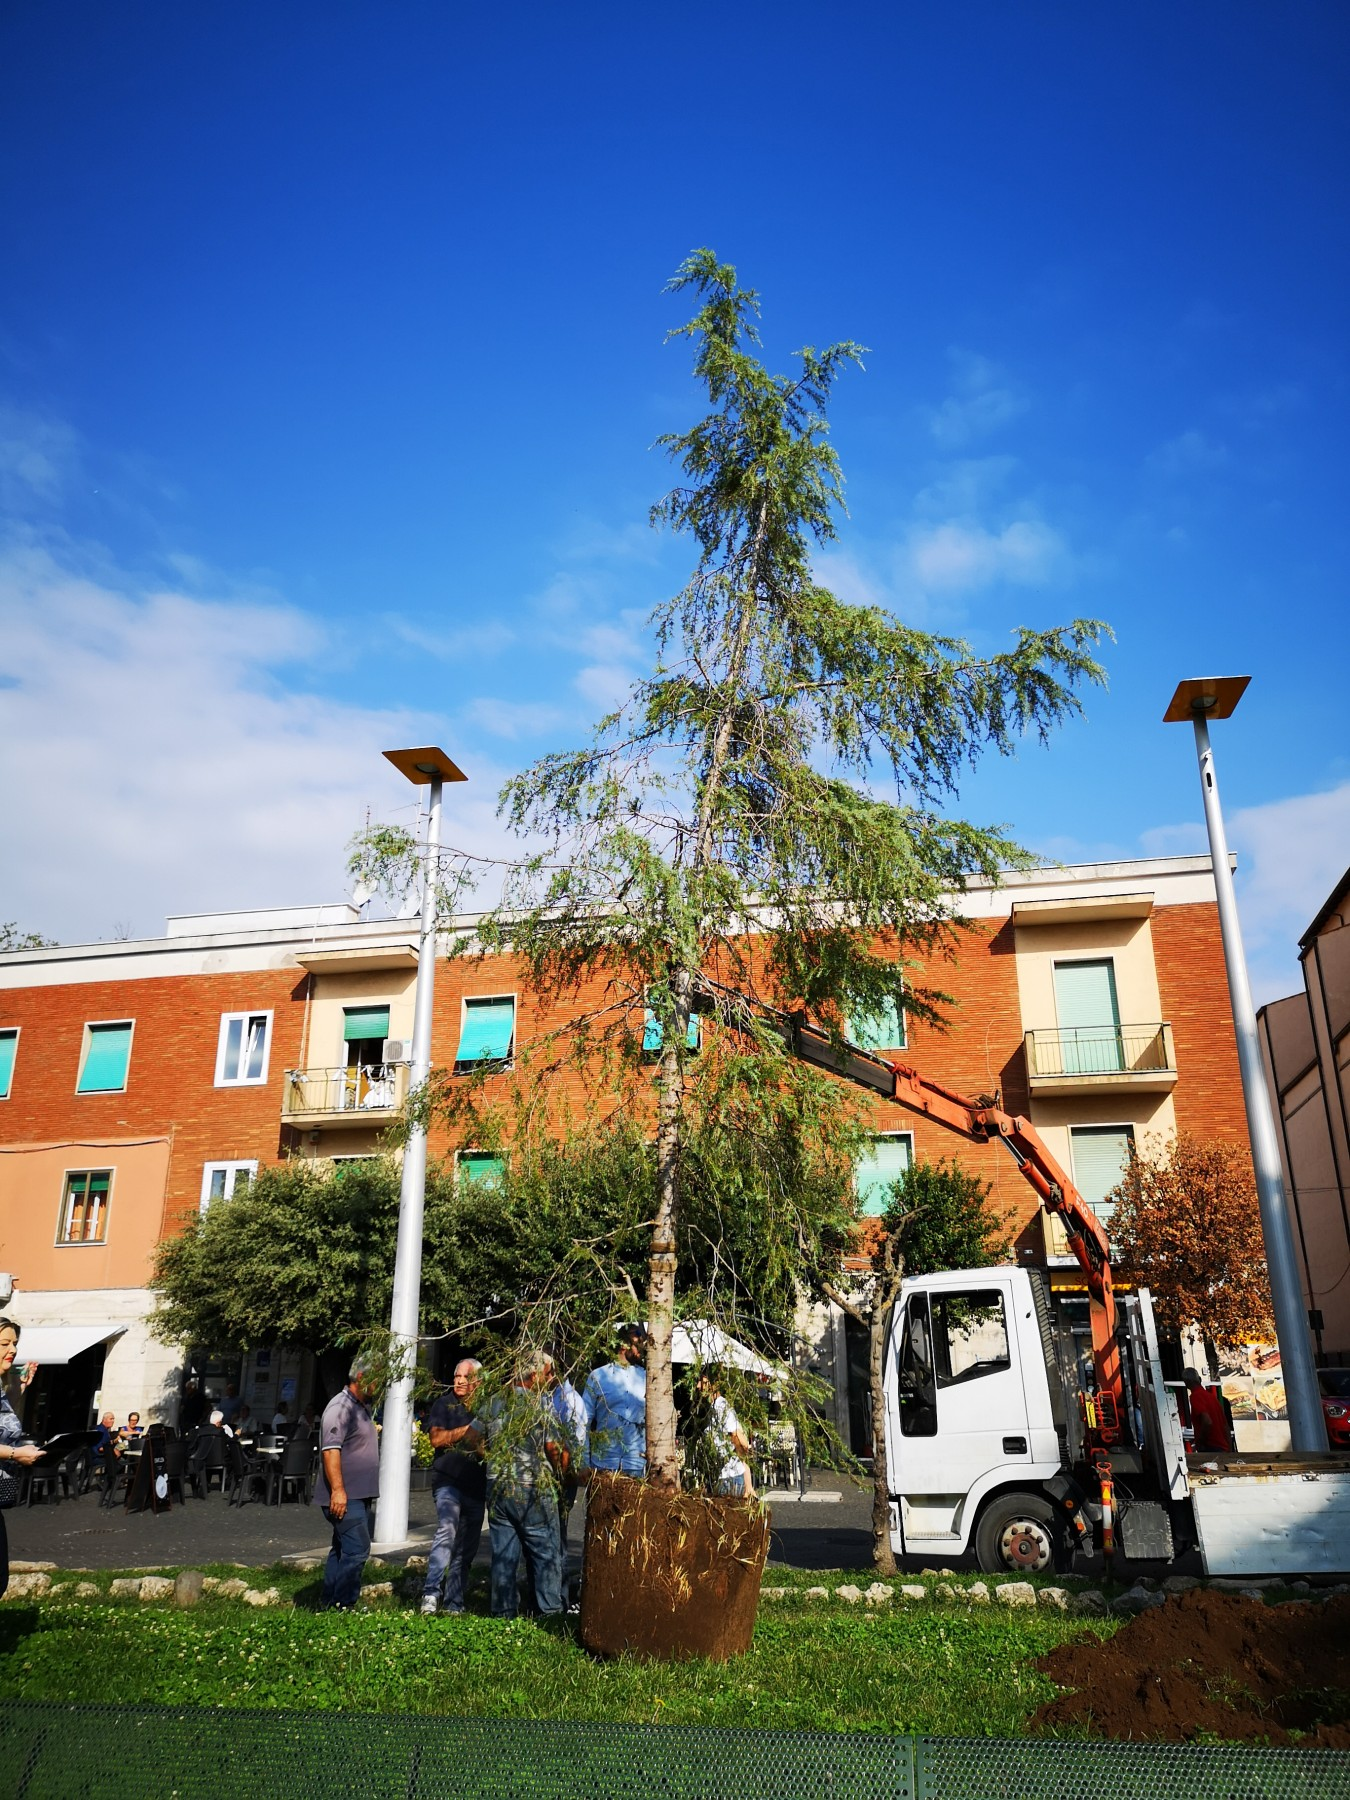 Workers of the Municipality planted the Tree